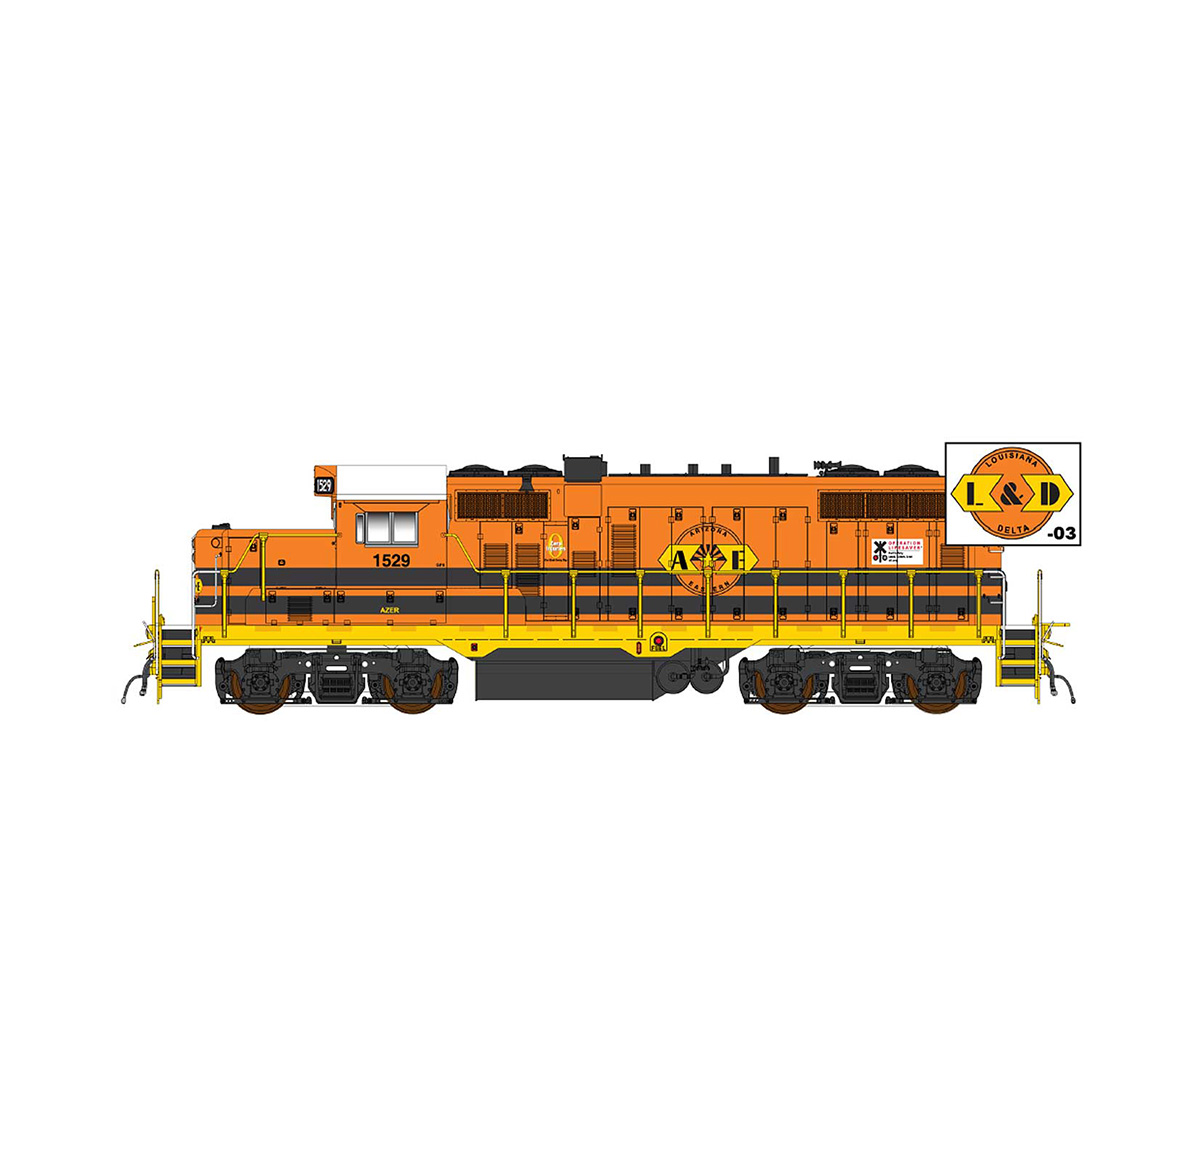 InterMountain 49871-02, HO EMD GP10 Paducah DCC, G&W/A&E #1530